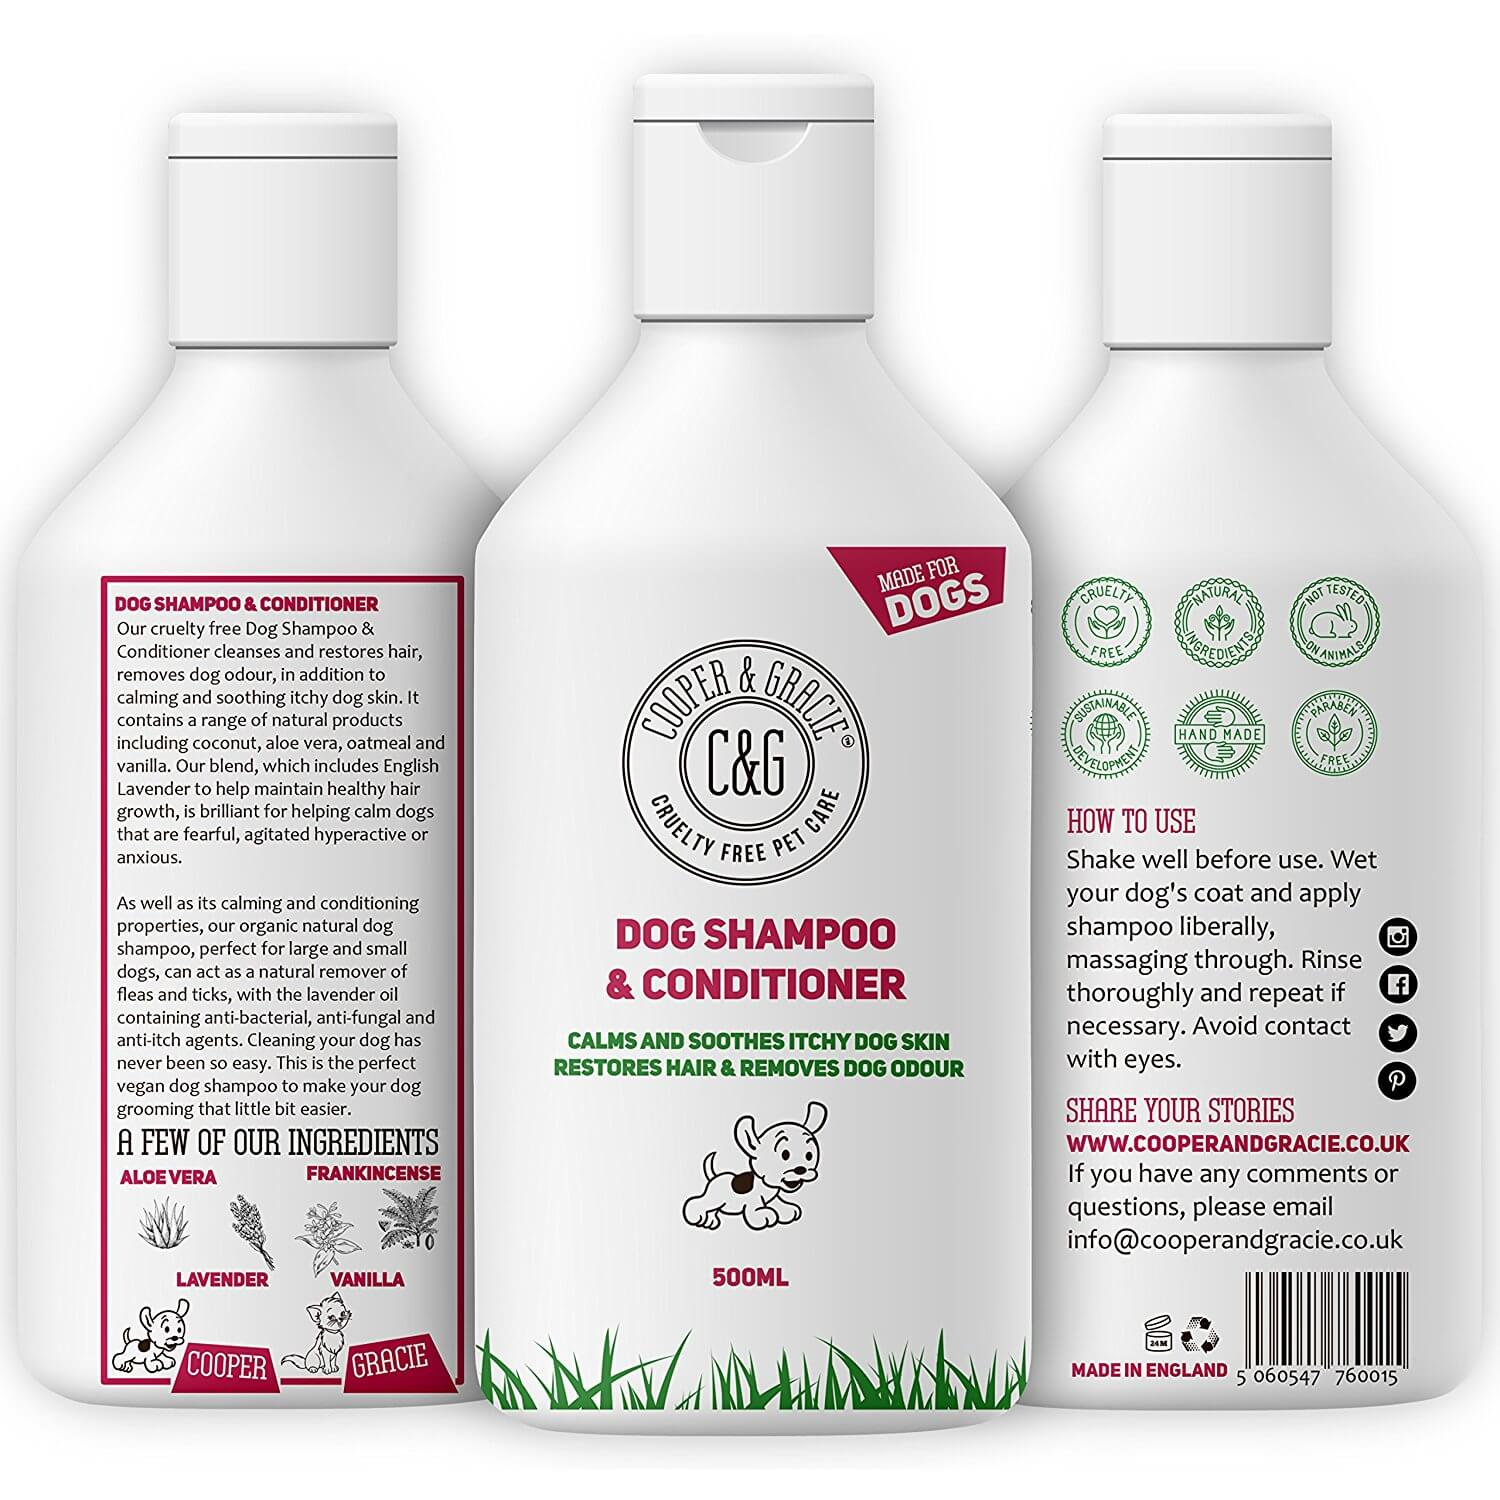 C&G dog shampoo